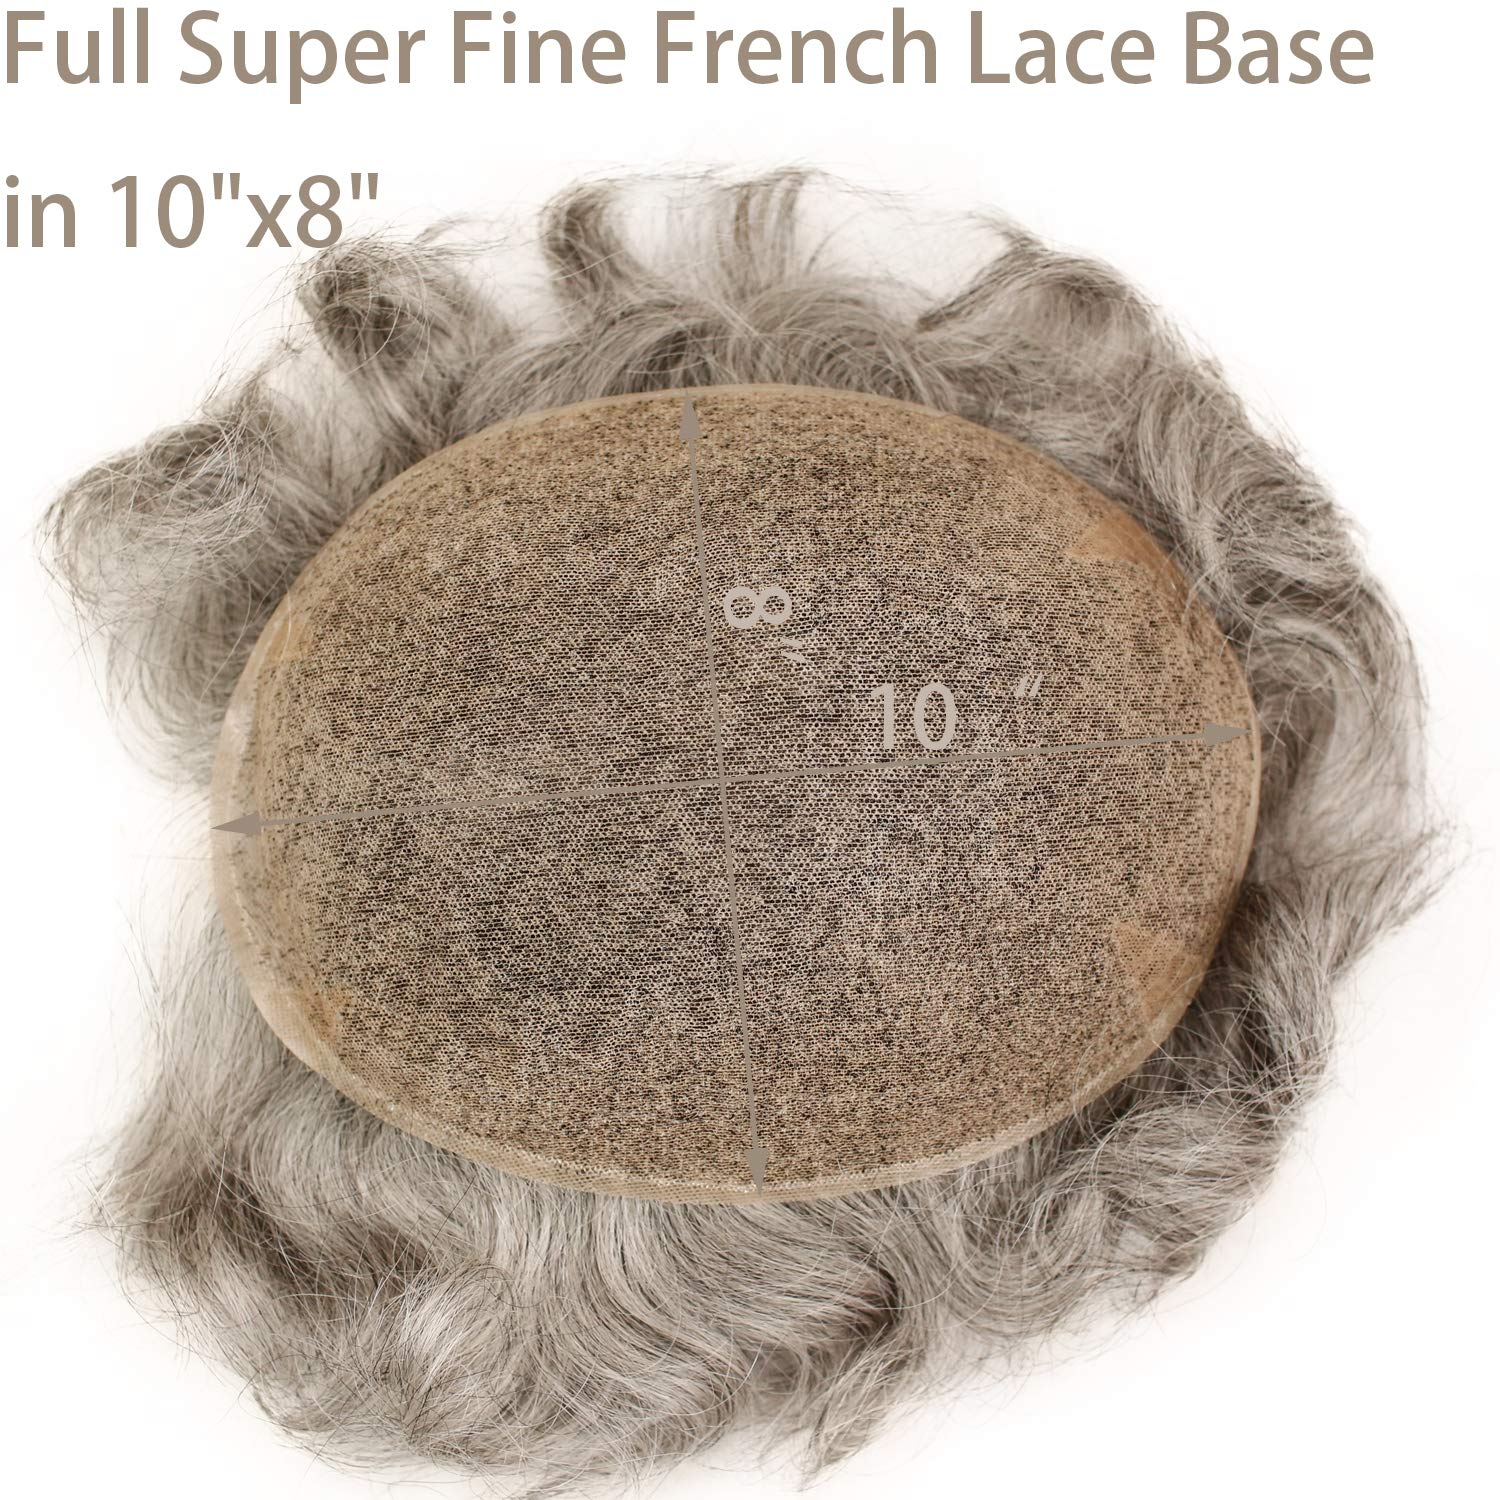 Swiss Full Lace Men's Toupee 1B Black Color Real Human Hair Mixed 80% Grey Synthetic Hair Replacement for Men Hairpiece 10X8